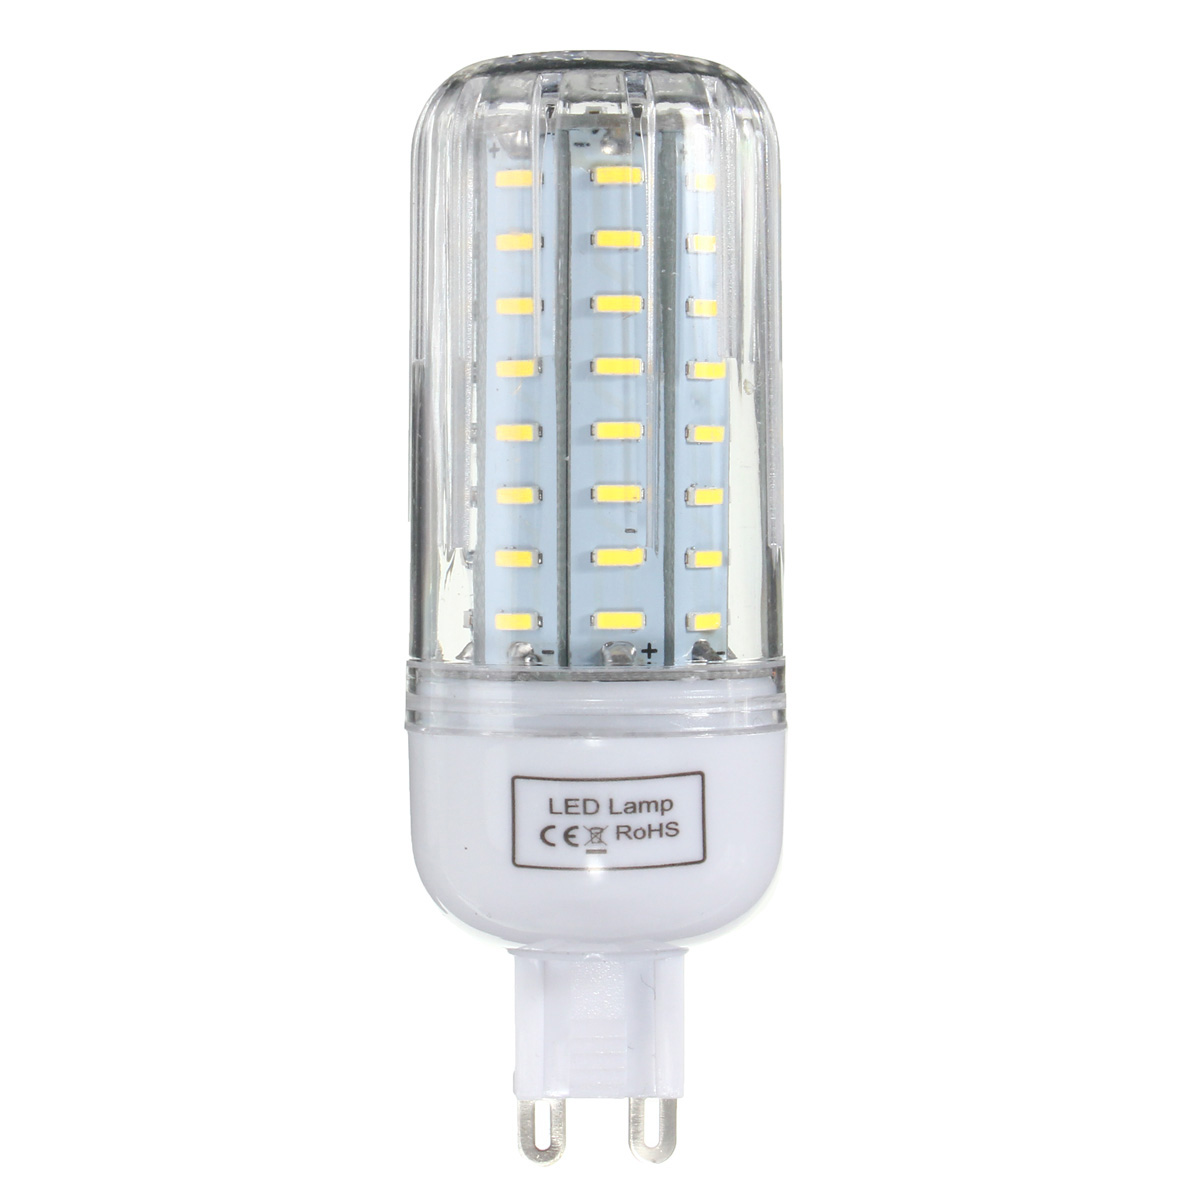 E27 E14 E12 B22 G9 GU10 7W 72 SMD 4014 LED Warm White Pure White Cover Corn Bulb AC110V